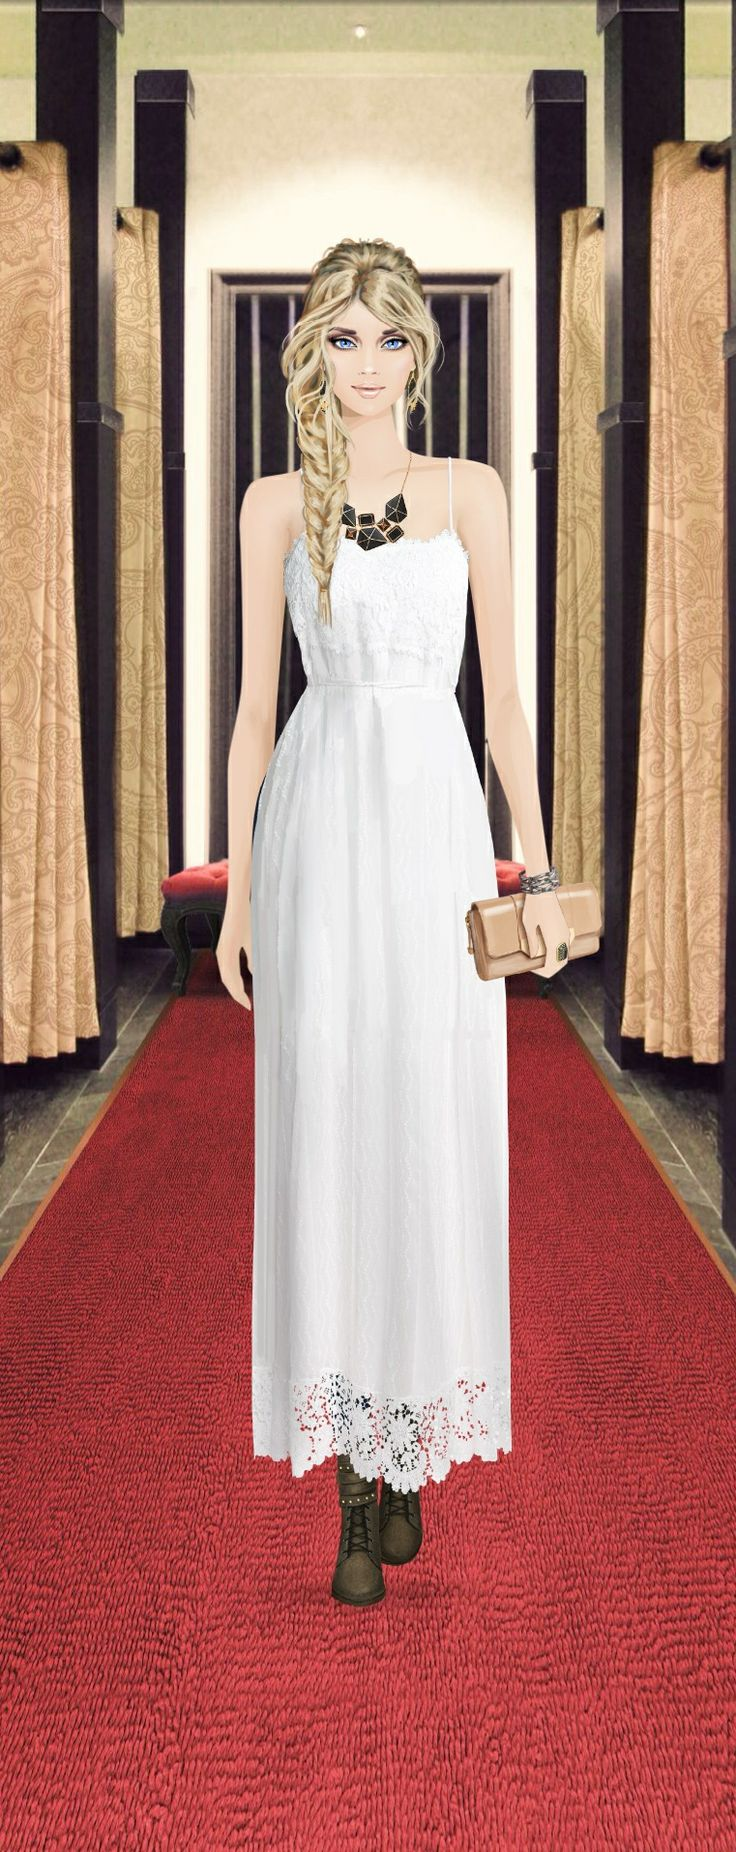 Red Carpet Gown Shopping | Doll fashion | Pinterest | Red carpet ...